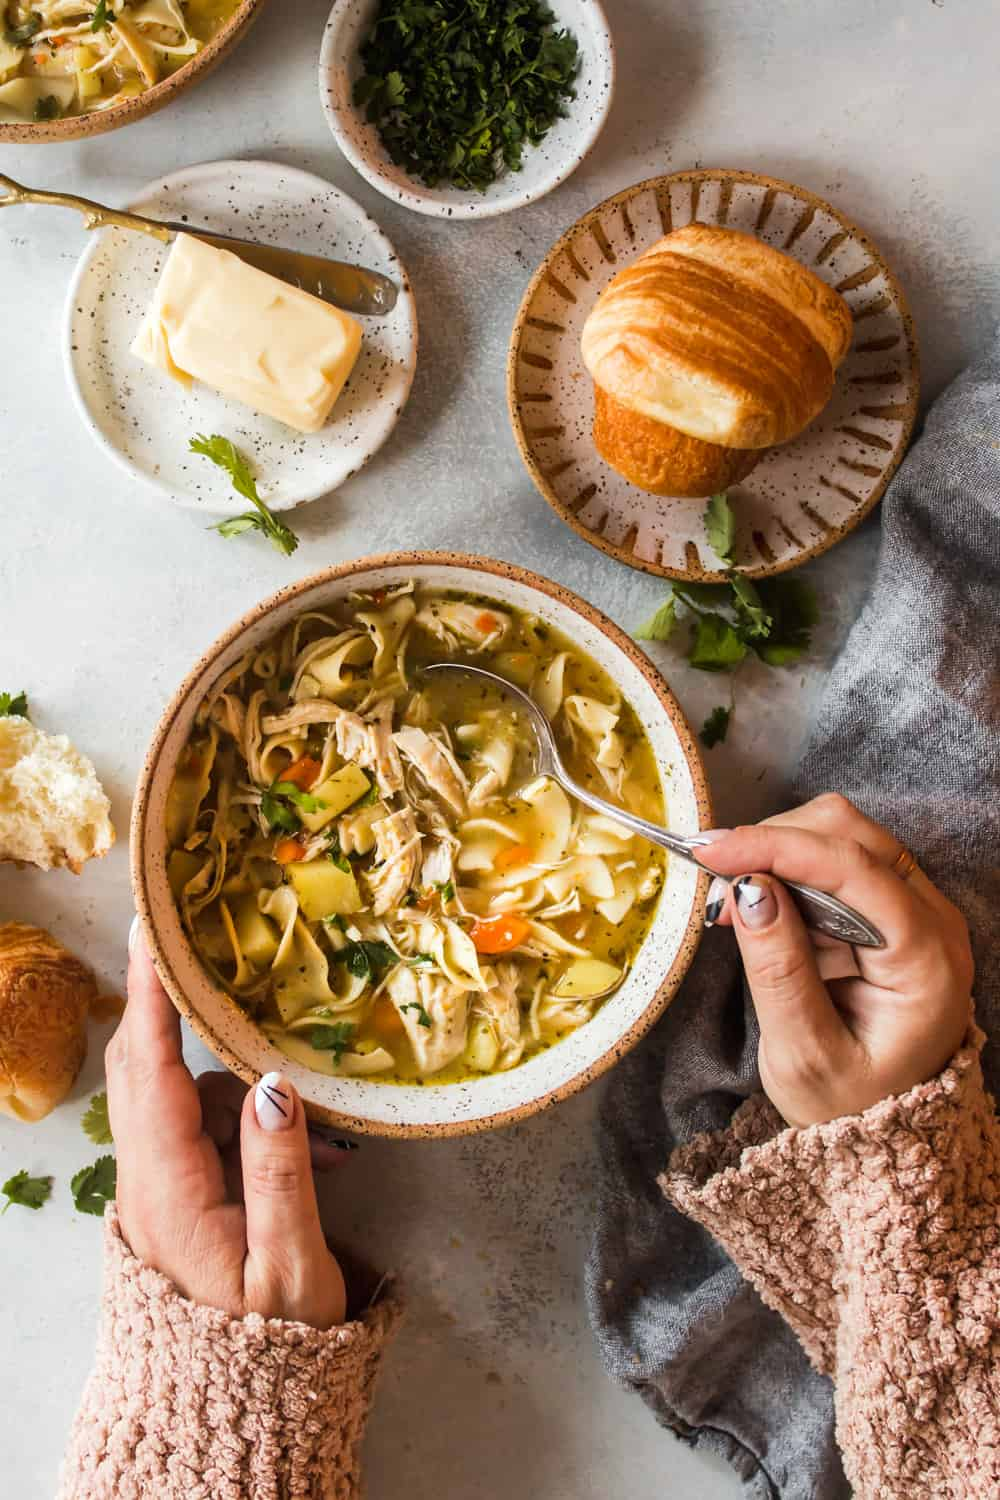 Woman's hands taking a spoonful of chicken soup from a white bowl. Bread and butter on the side.